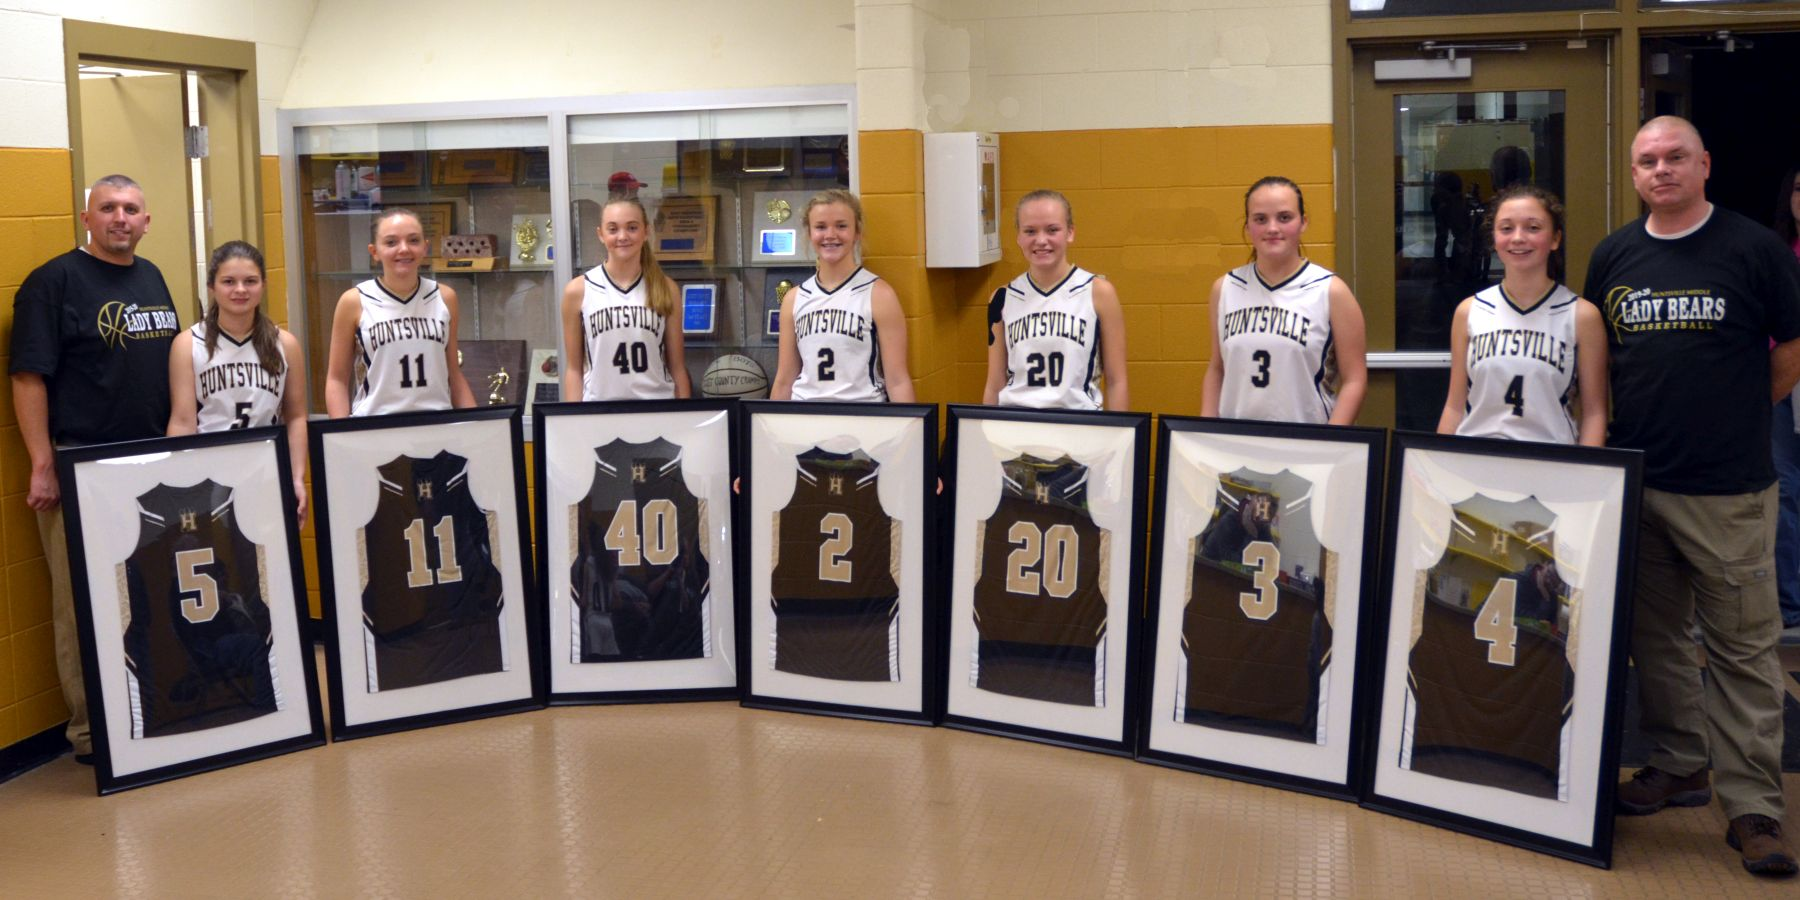 8th grade night lady bears 2